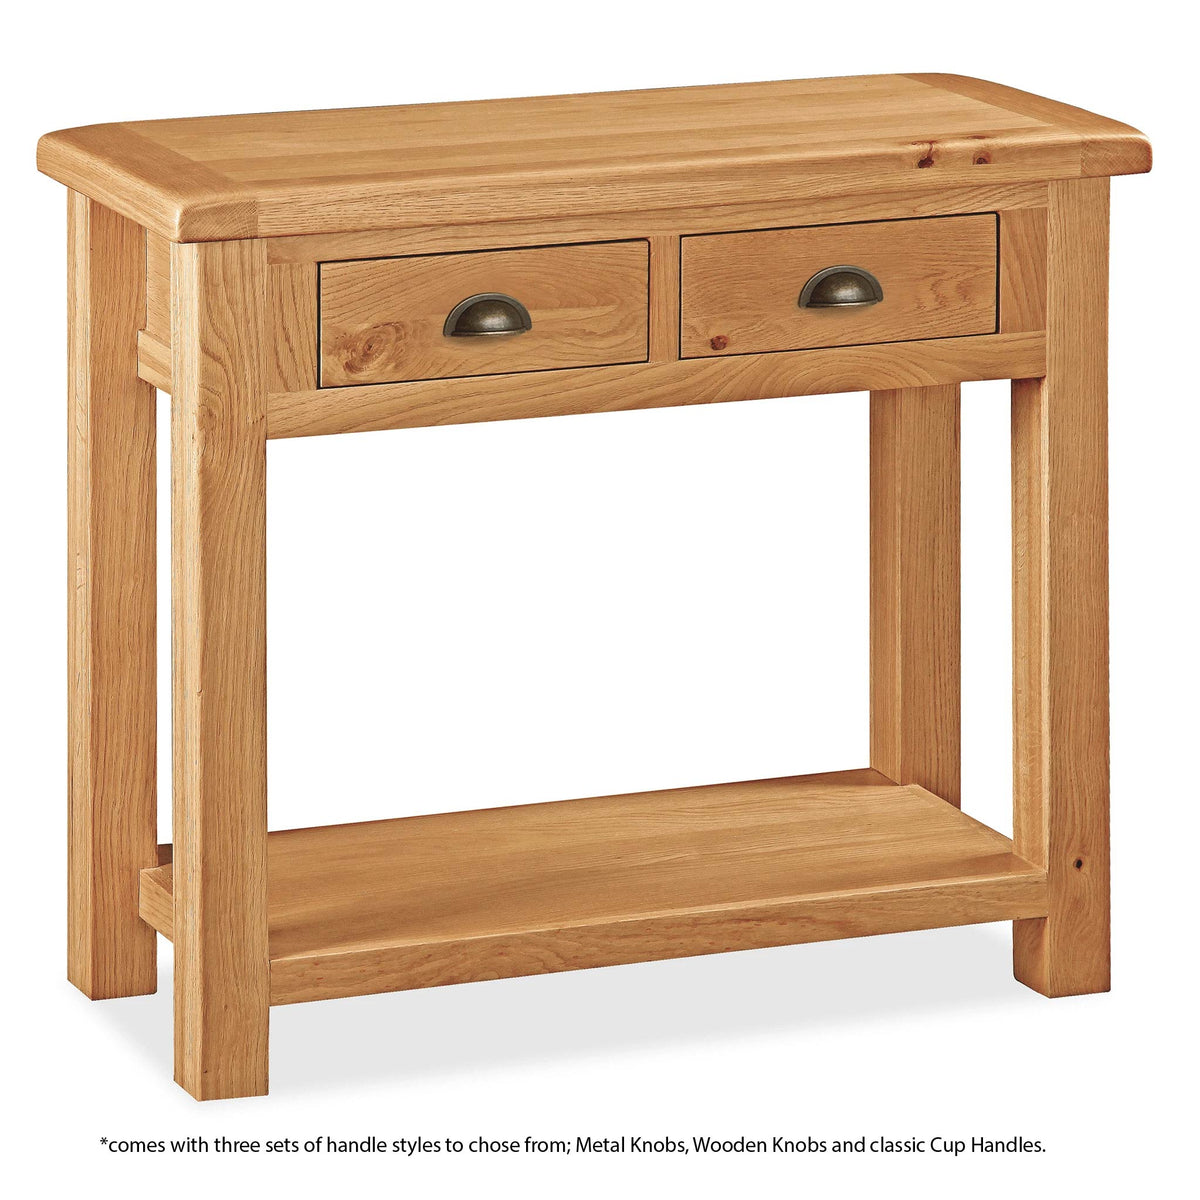 Sidmouth Oak Console Table - With Handle information